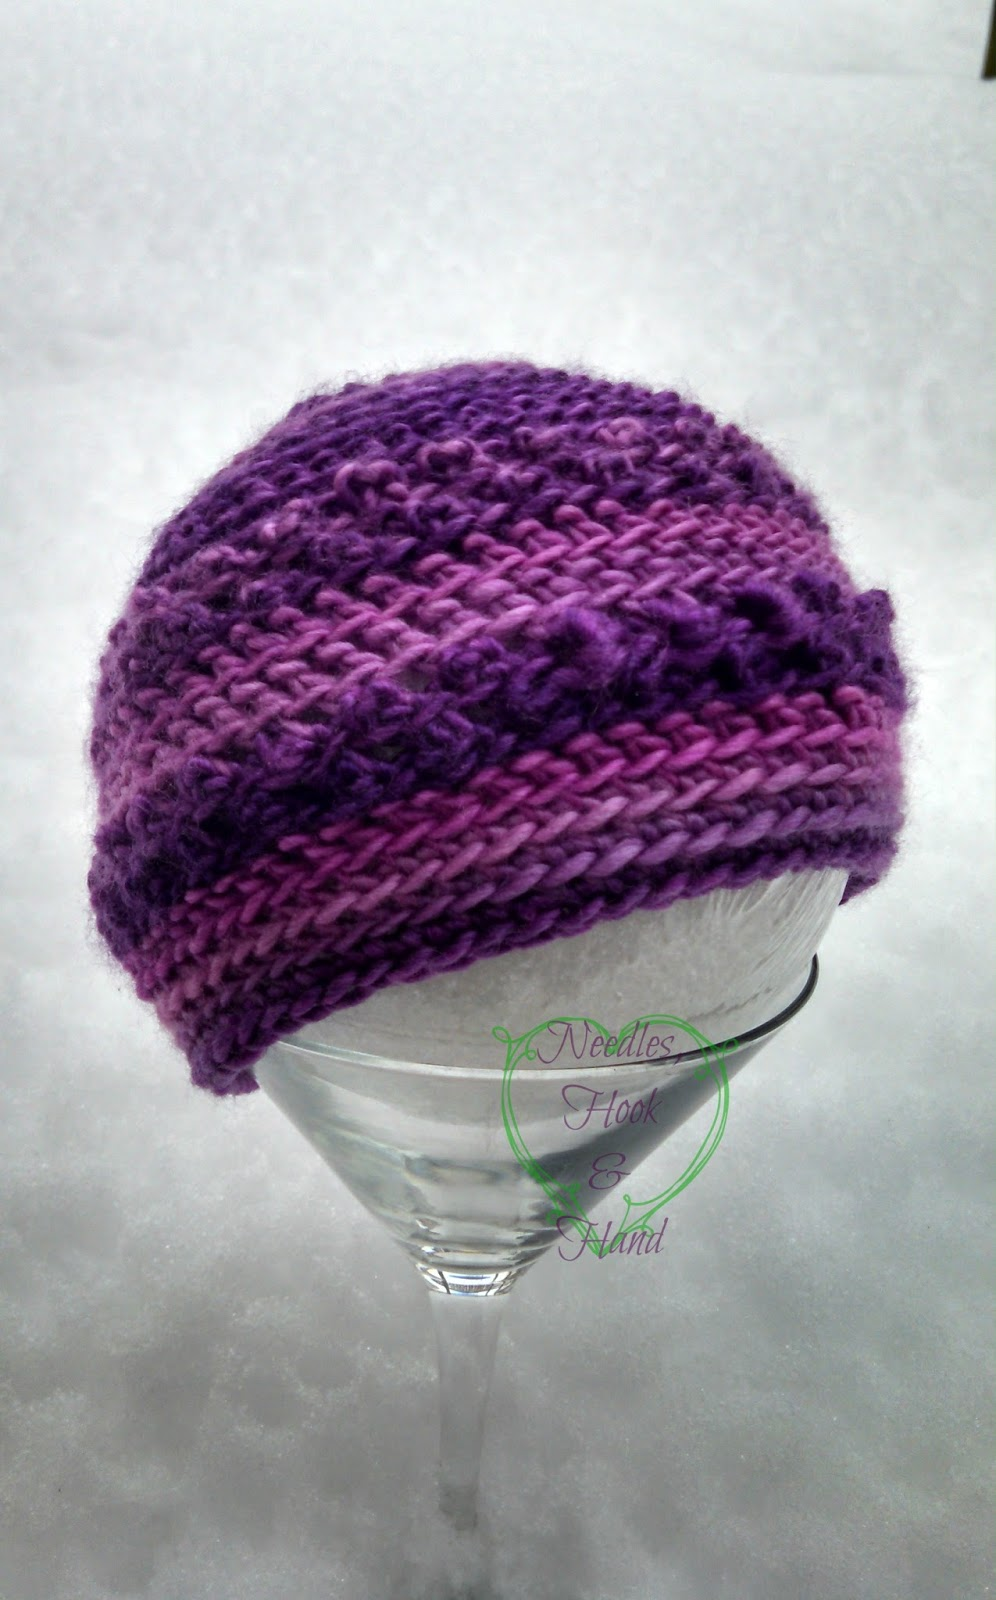 Felted Button - Colorful Crochet Patterns: Only Just Born Hat Free ...